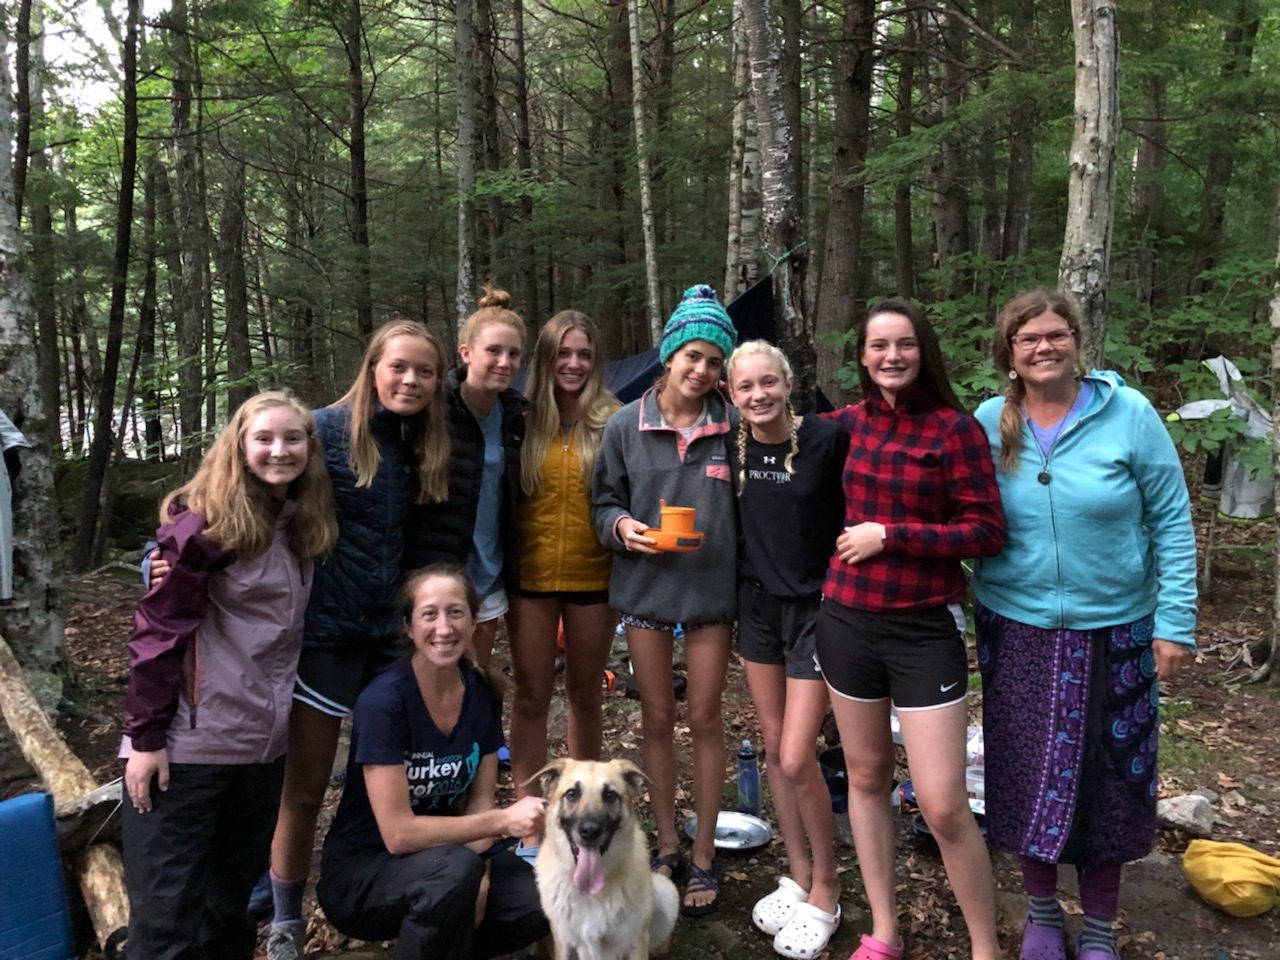 Proctor Academy Wilderness Orientation Experiential Learning